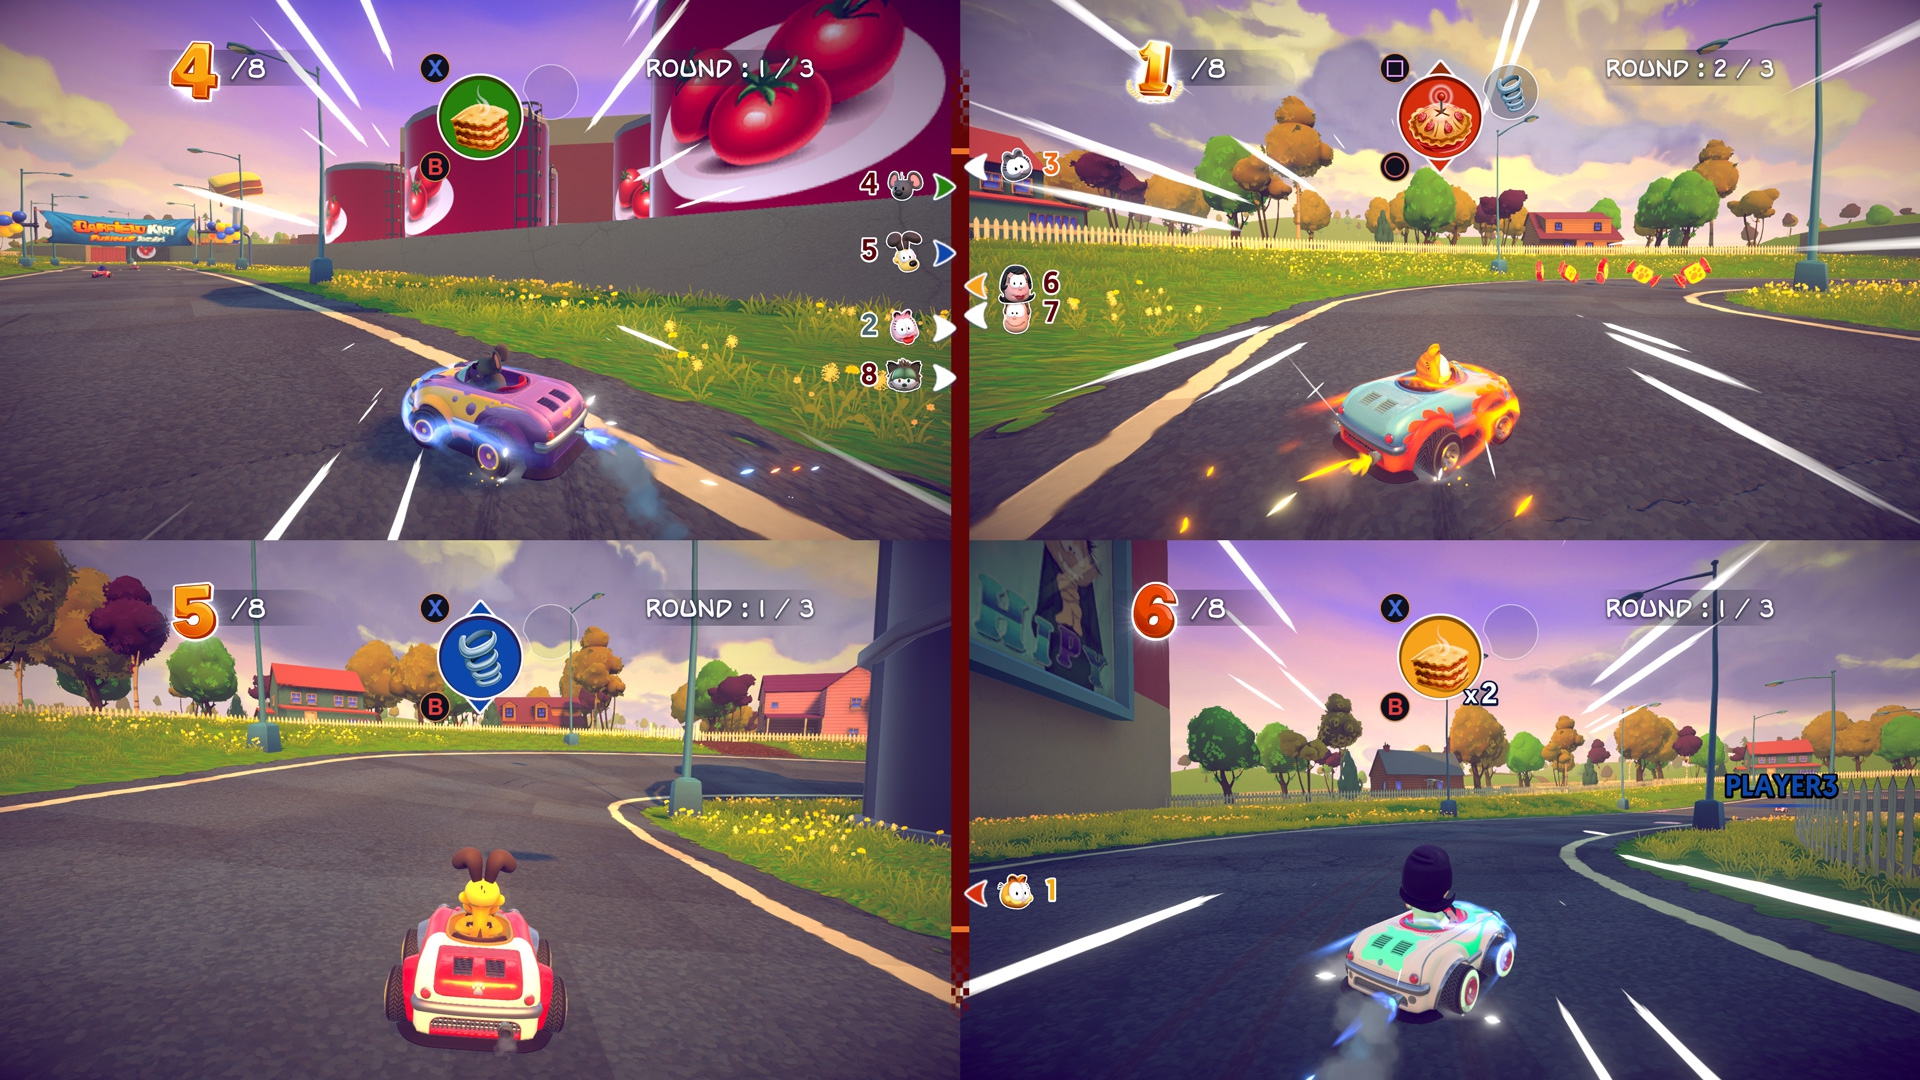 Garfield Karting: Furious Racing screenshot vier spelers